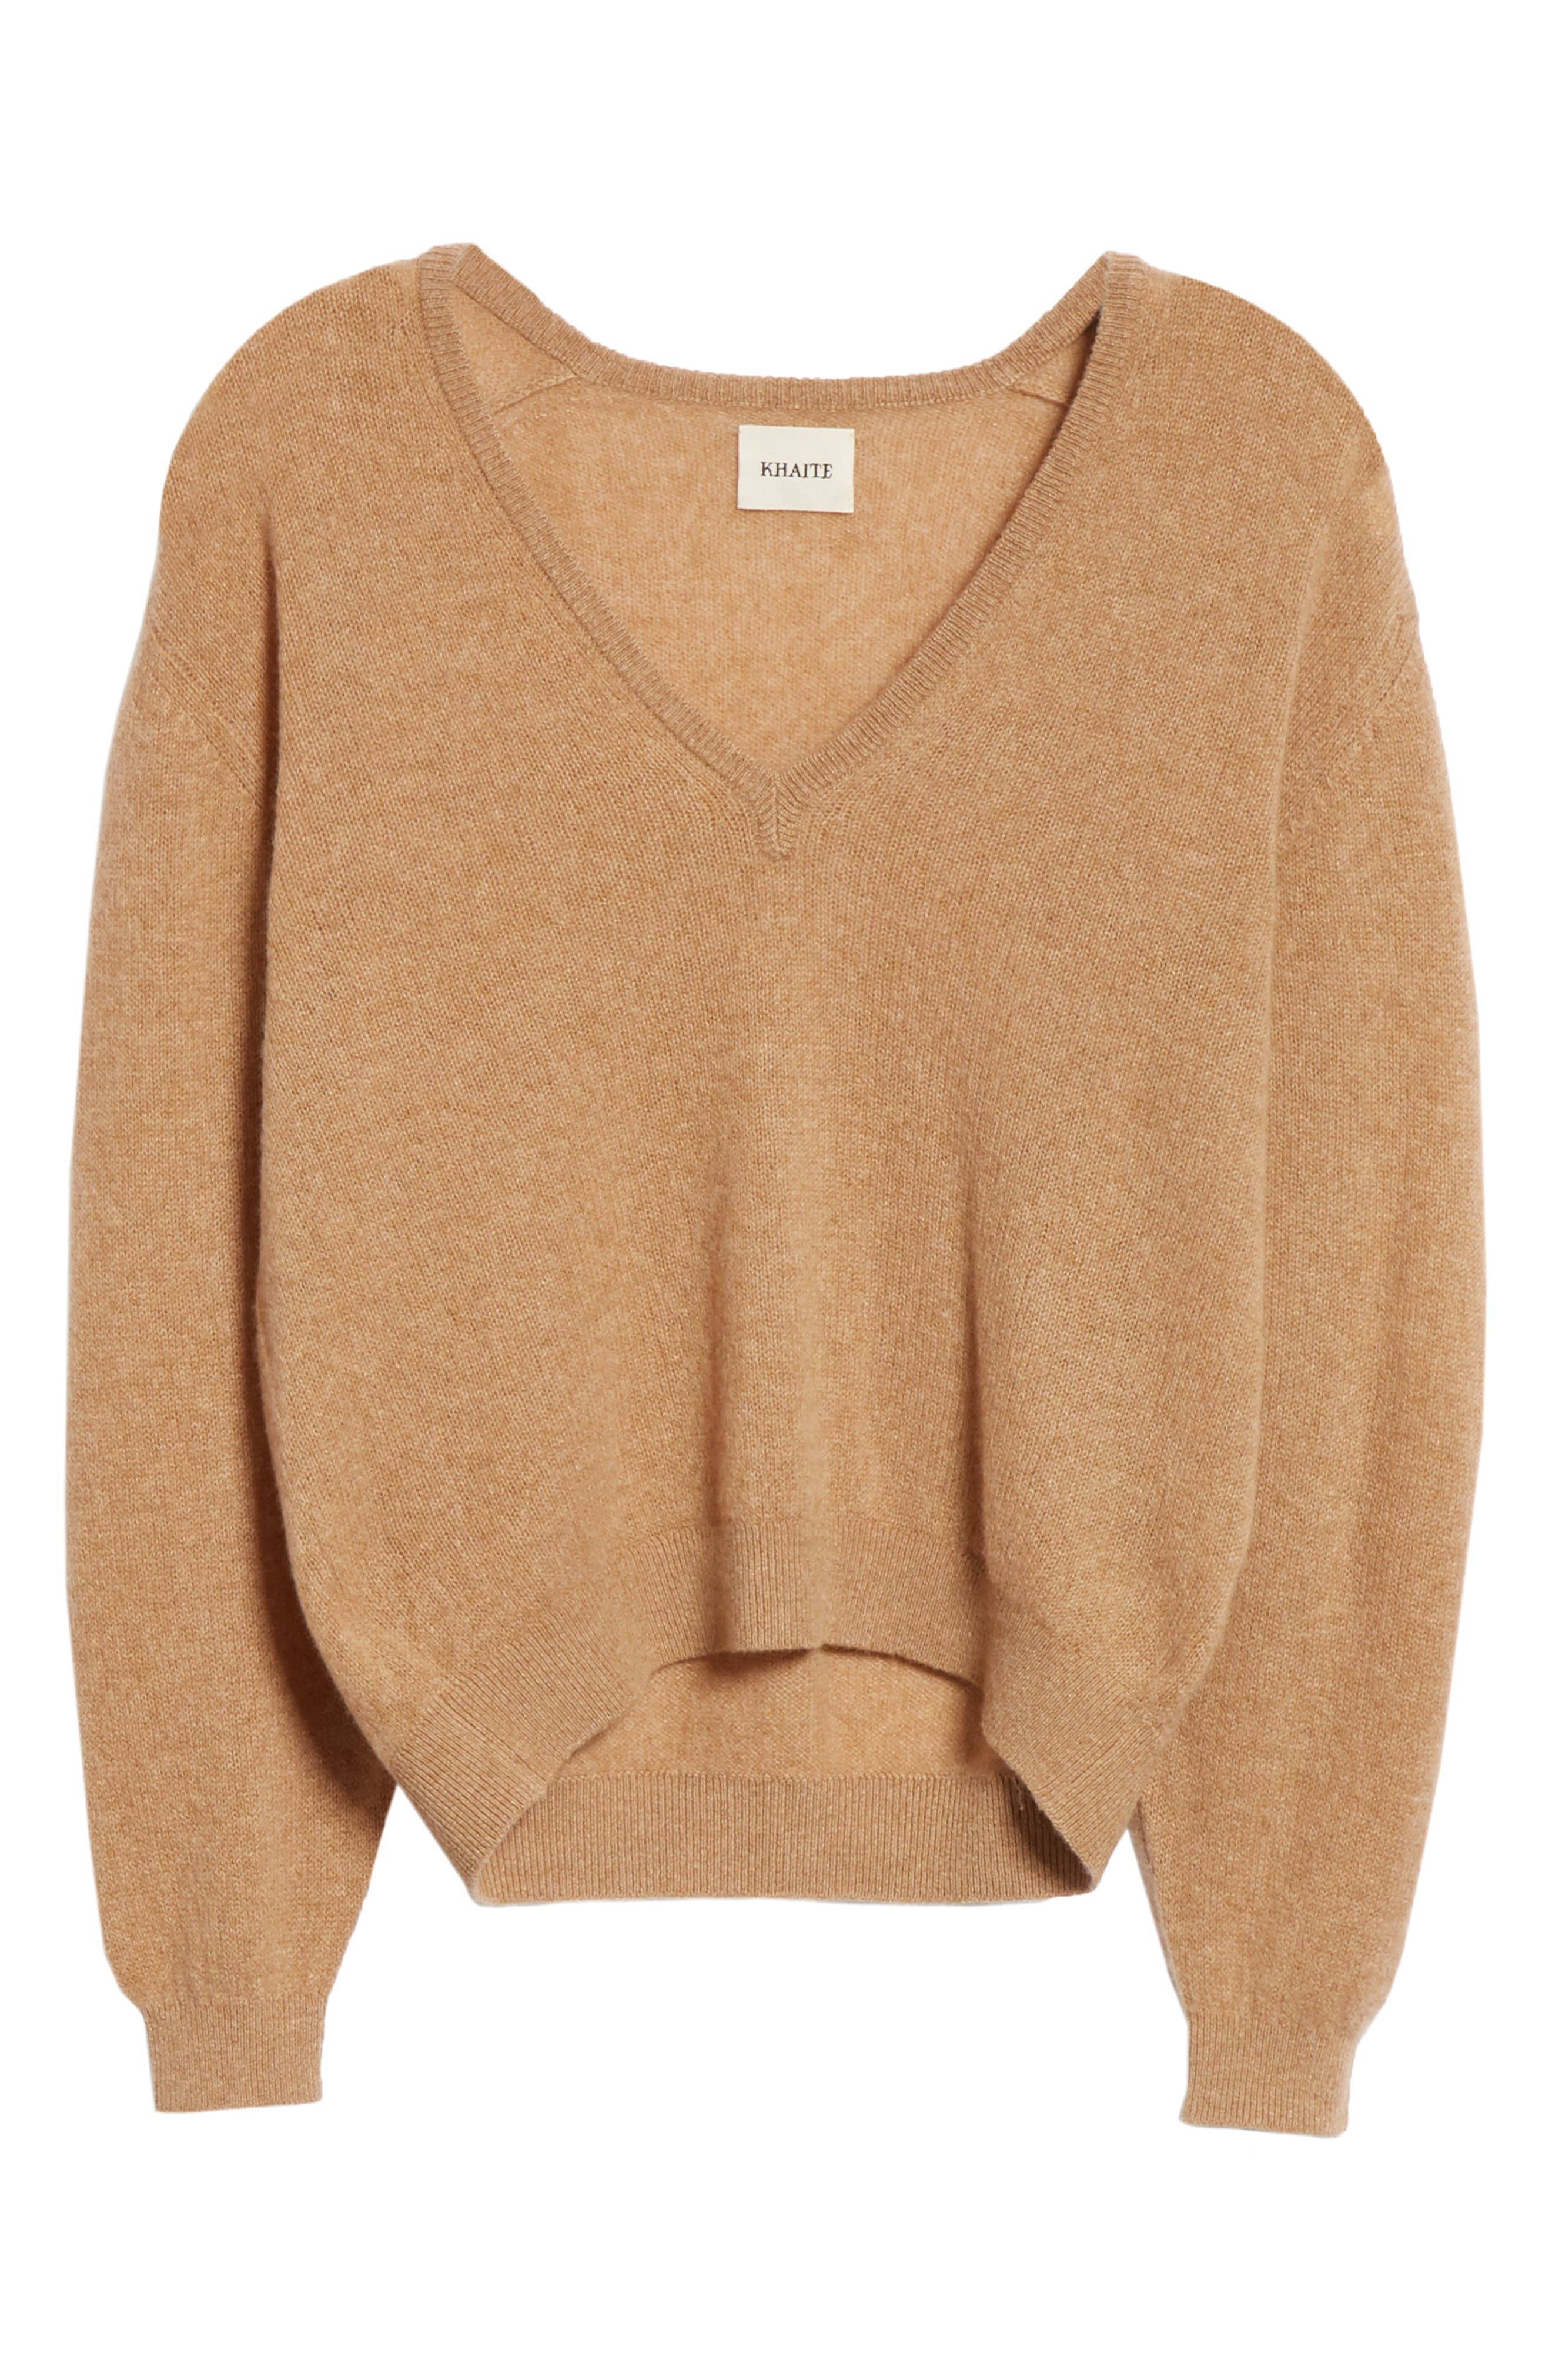 KHAITE,                             Sam Cashmere Sweater,                             Alternate thumbnail 6, color,                             CAMEL